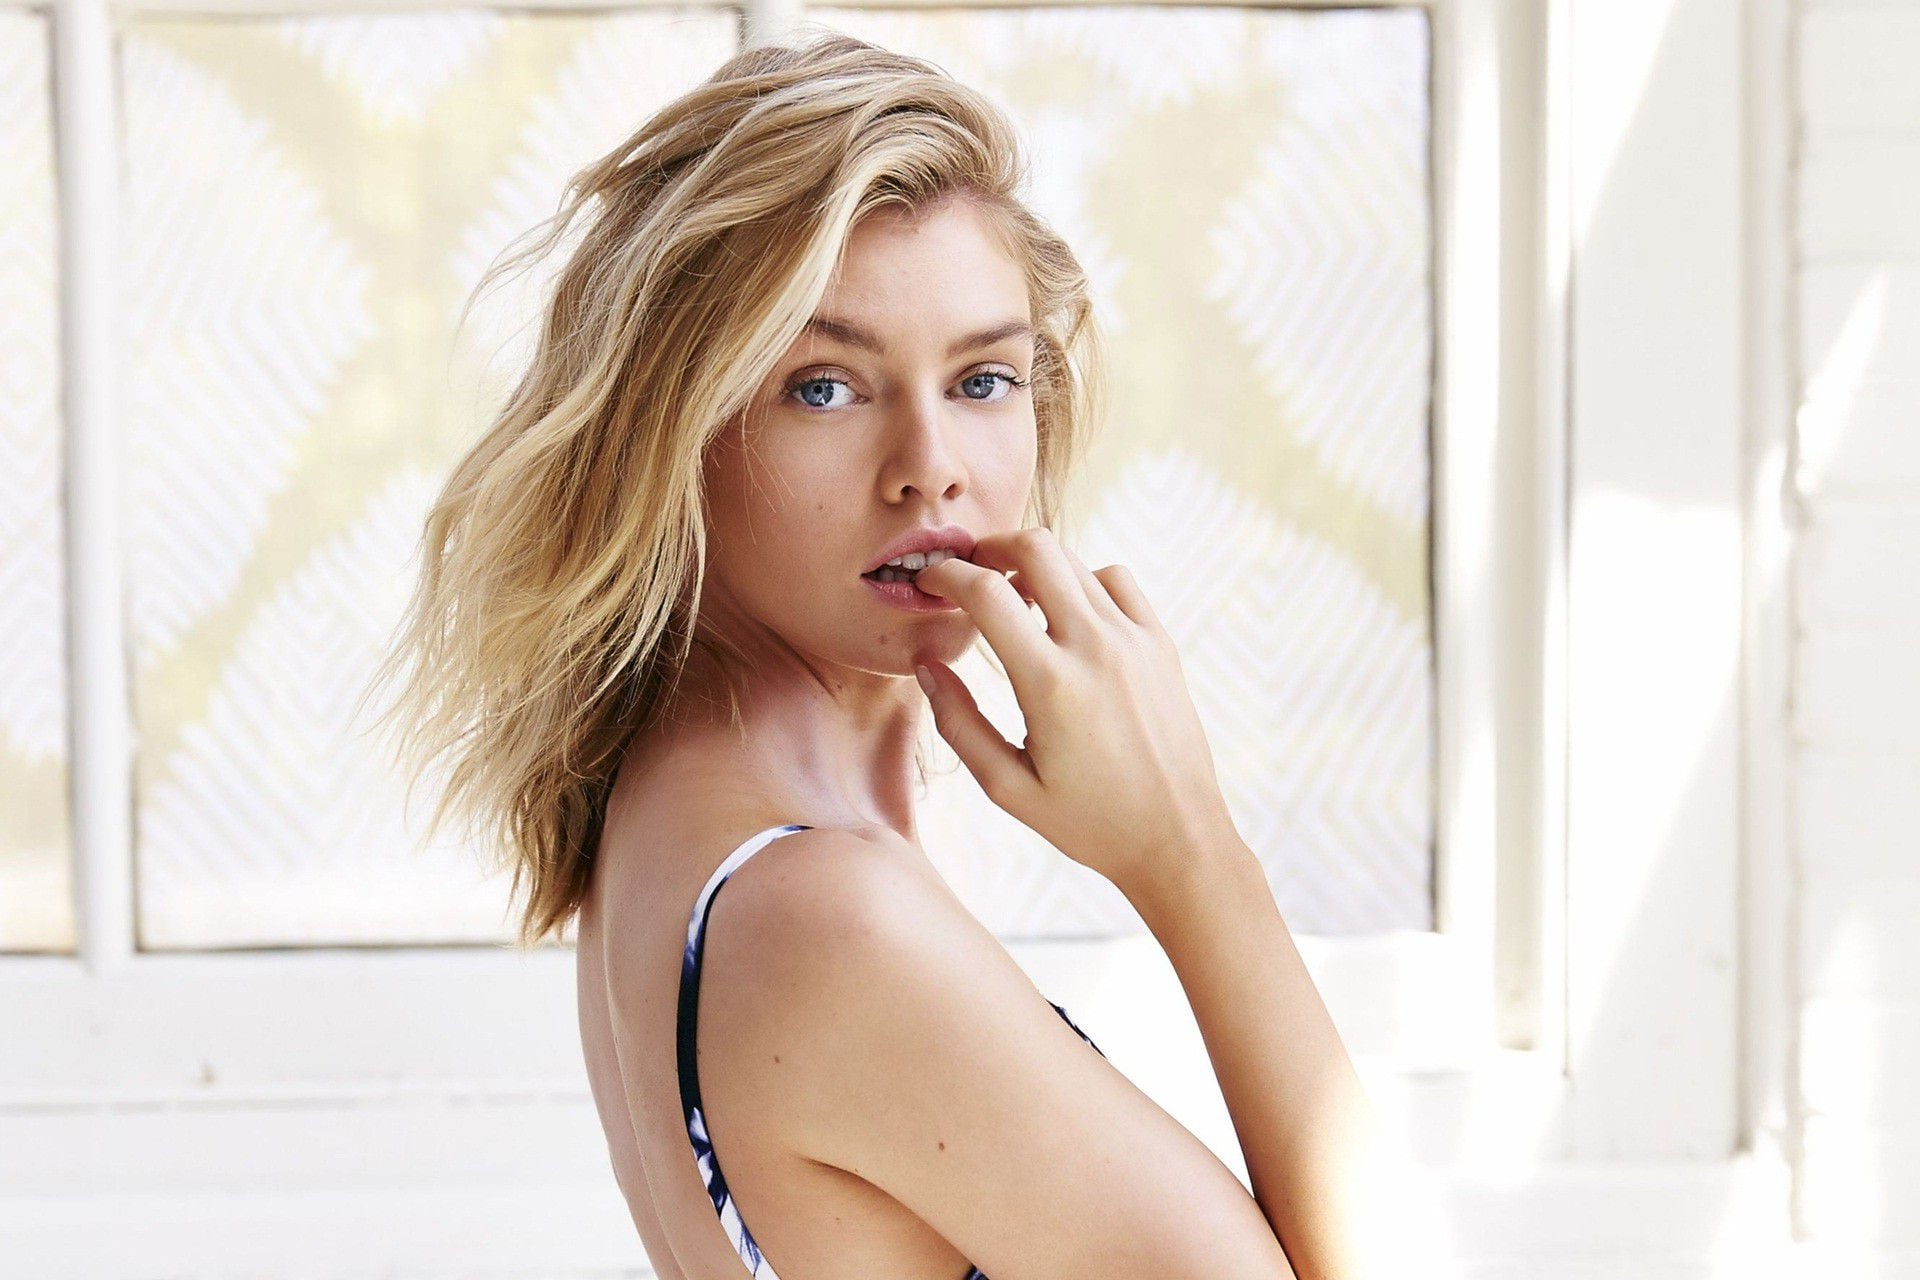 Stella Maxwell HD Wallpapers of High Quality Download 1920x1280